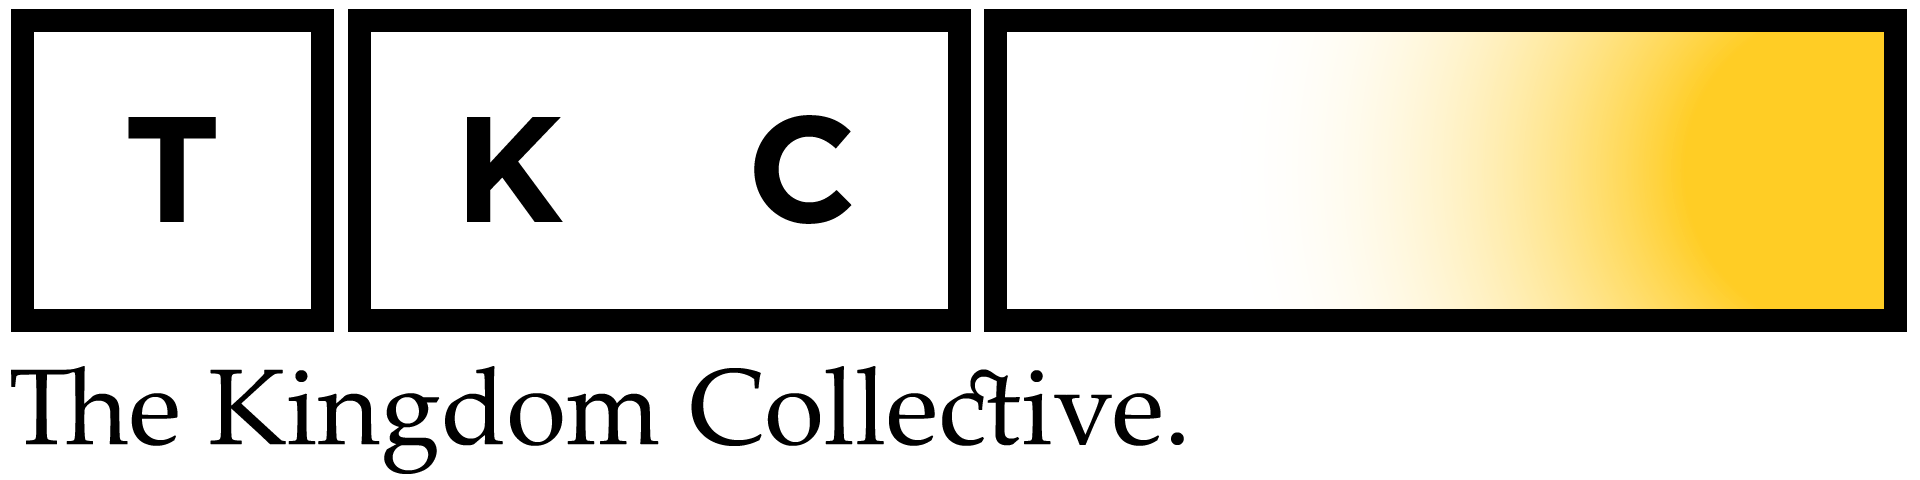 The Kingdom Collective